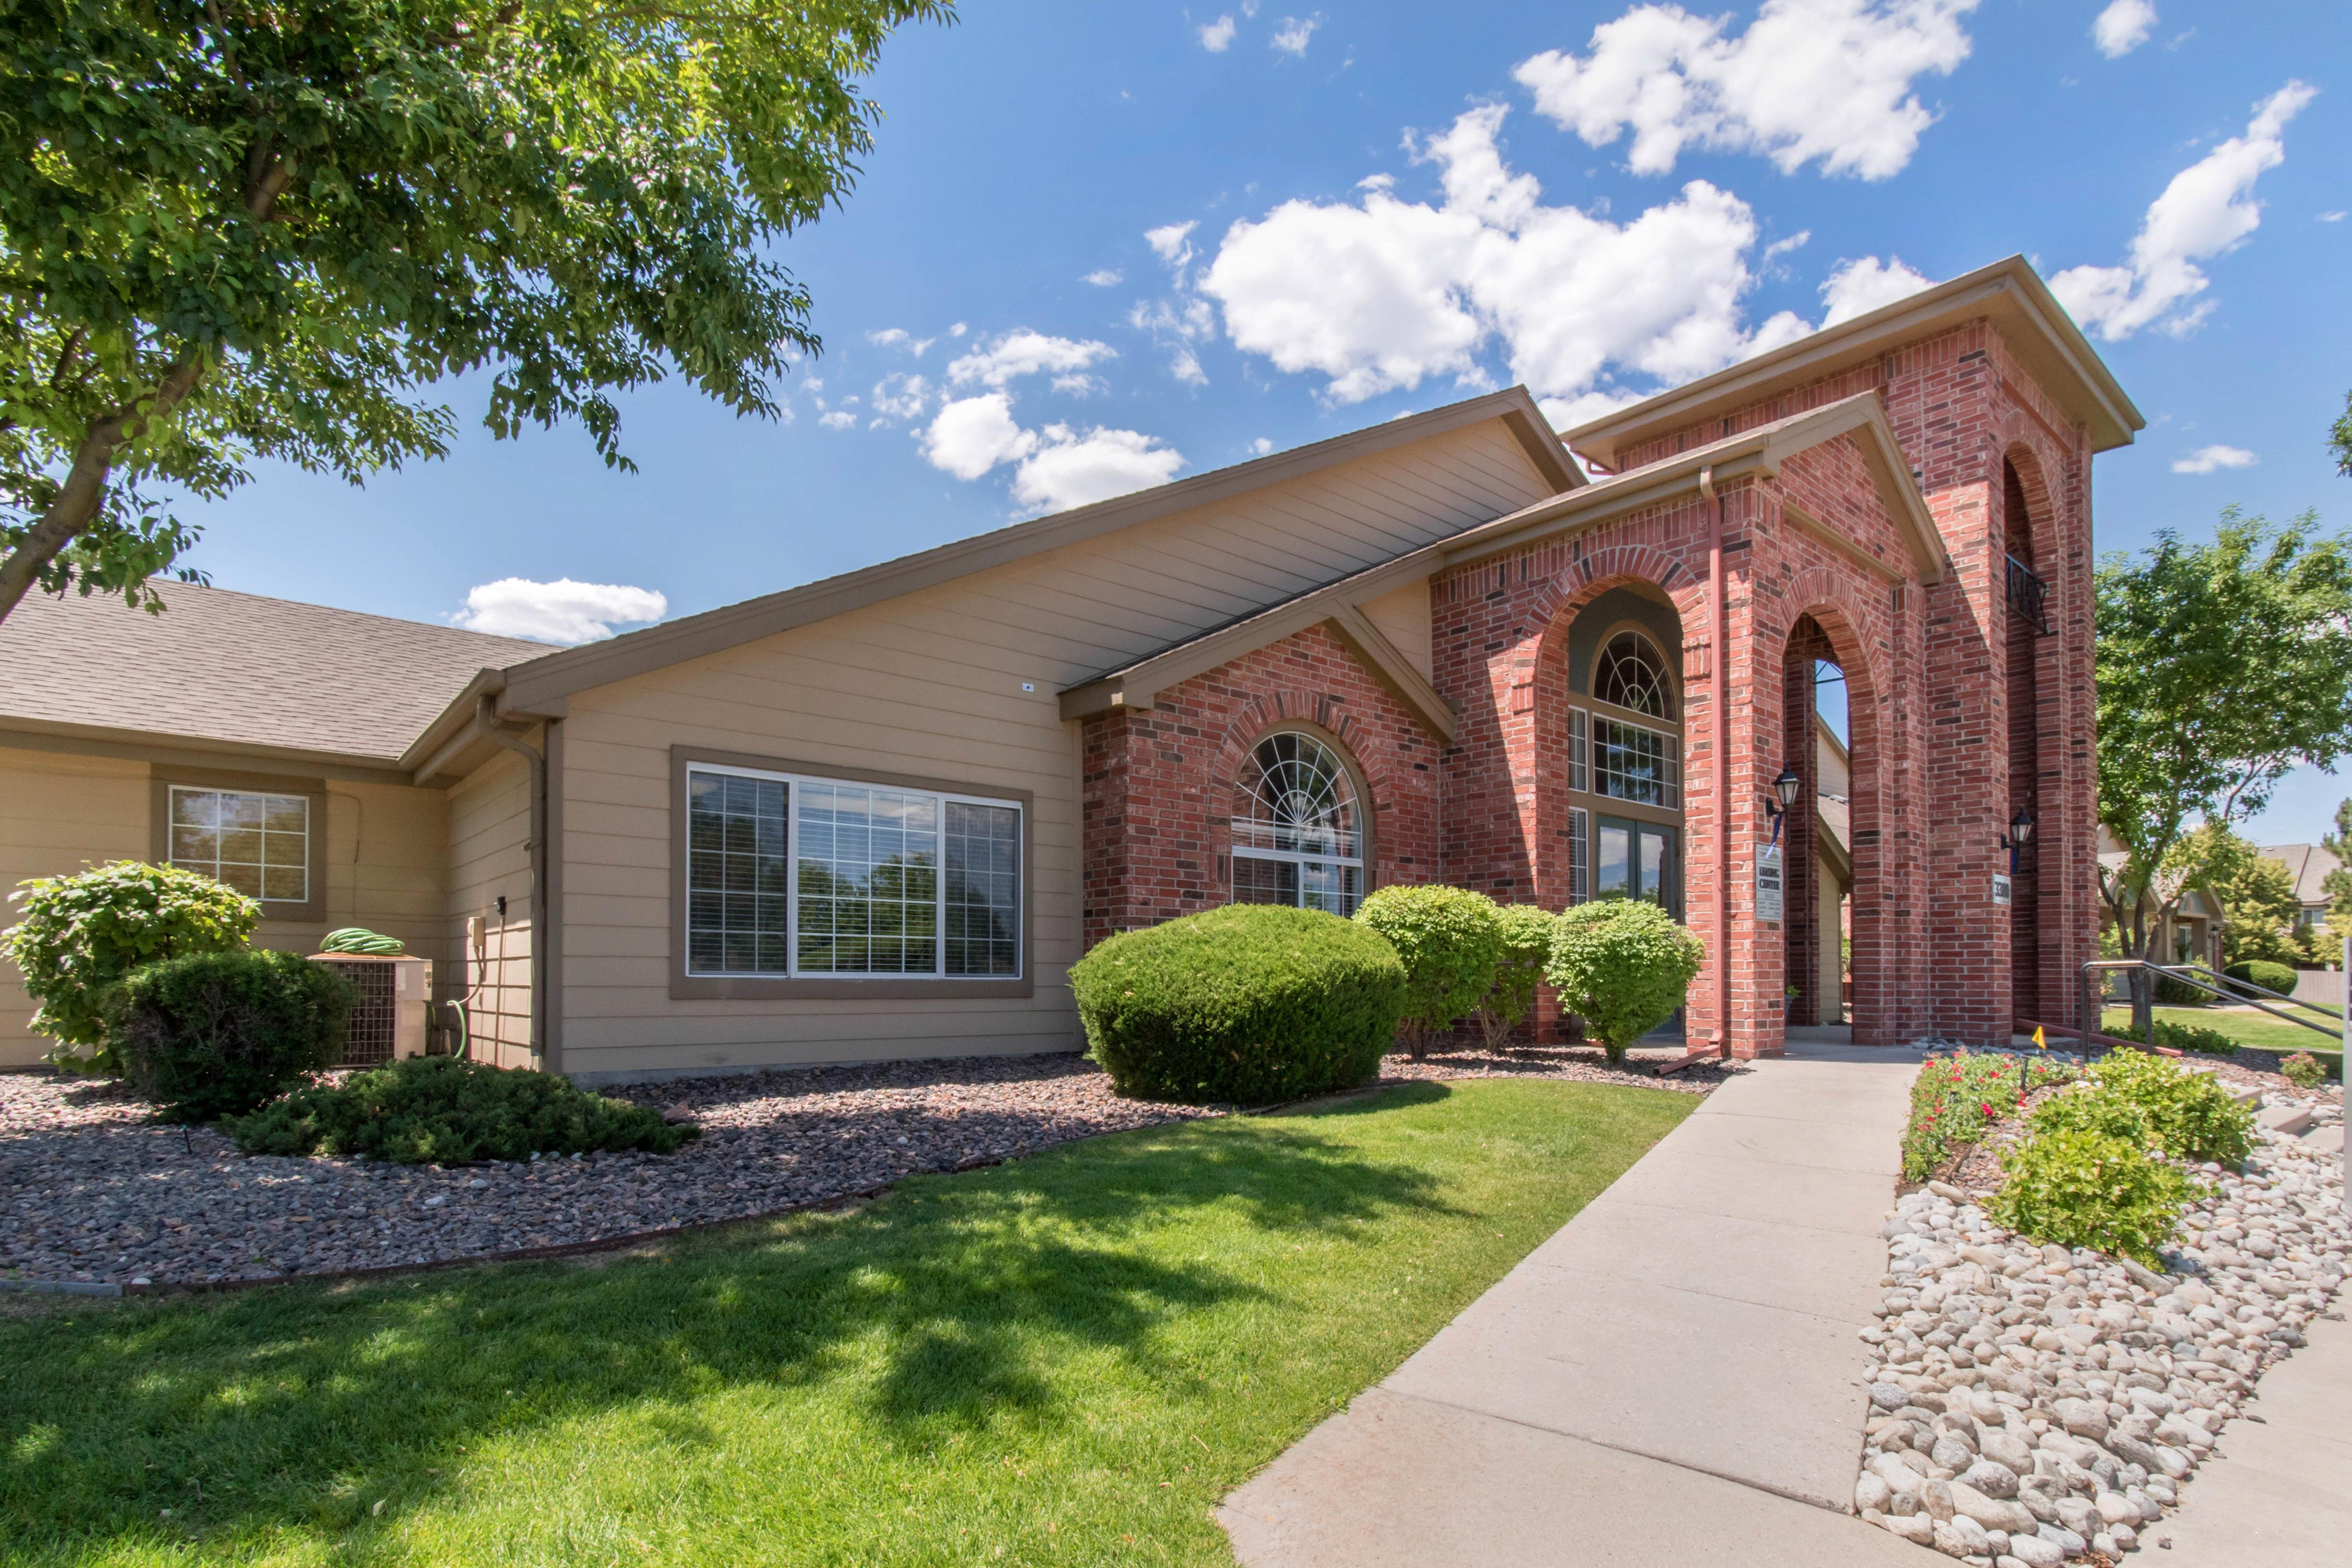 ... Highlands Ranch, CO. Front Entrance And Leasing Office